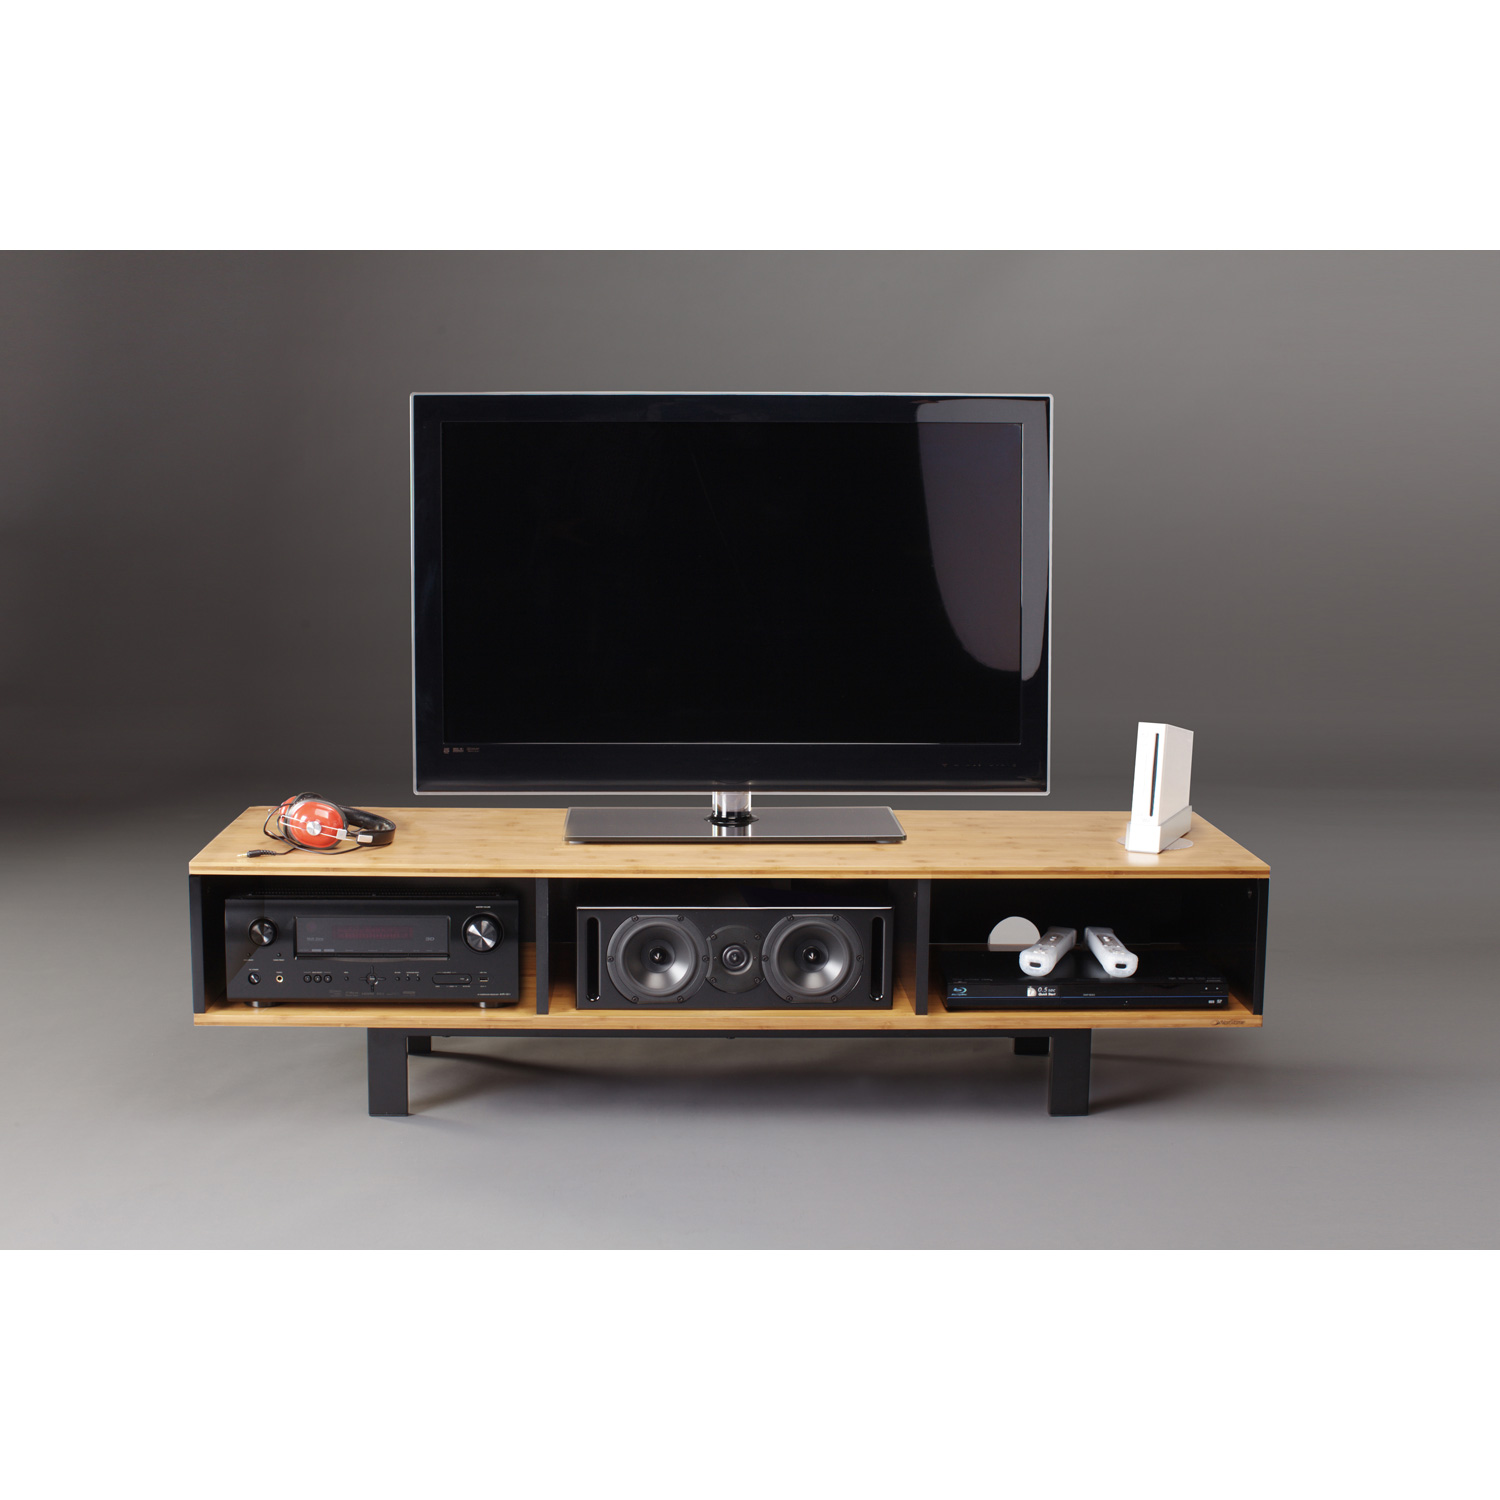 Banc Pour Tv Meuble Tv Dimension Objets Decoration Maison # Dimension Meubles Tv Ecran Plat